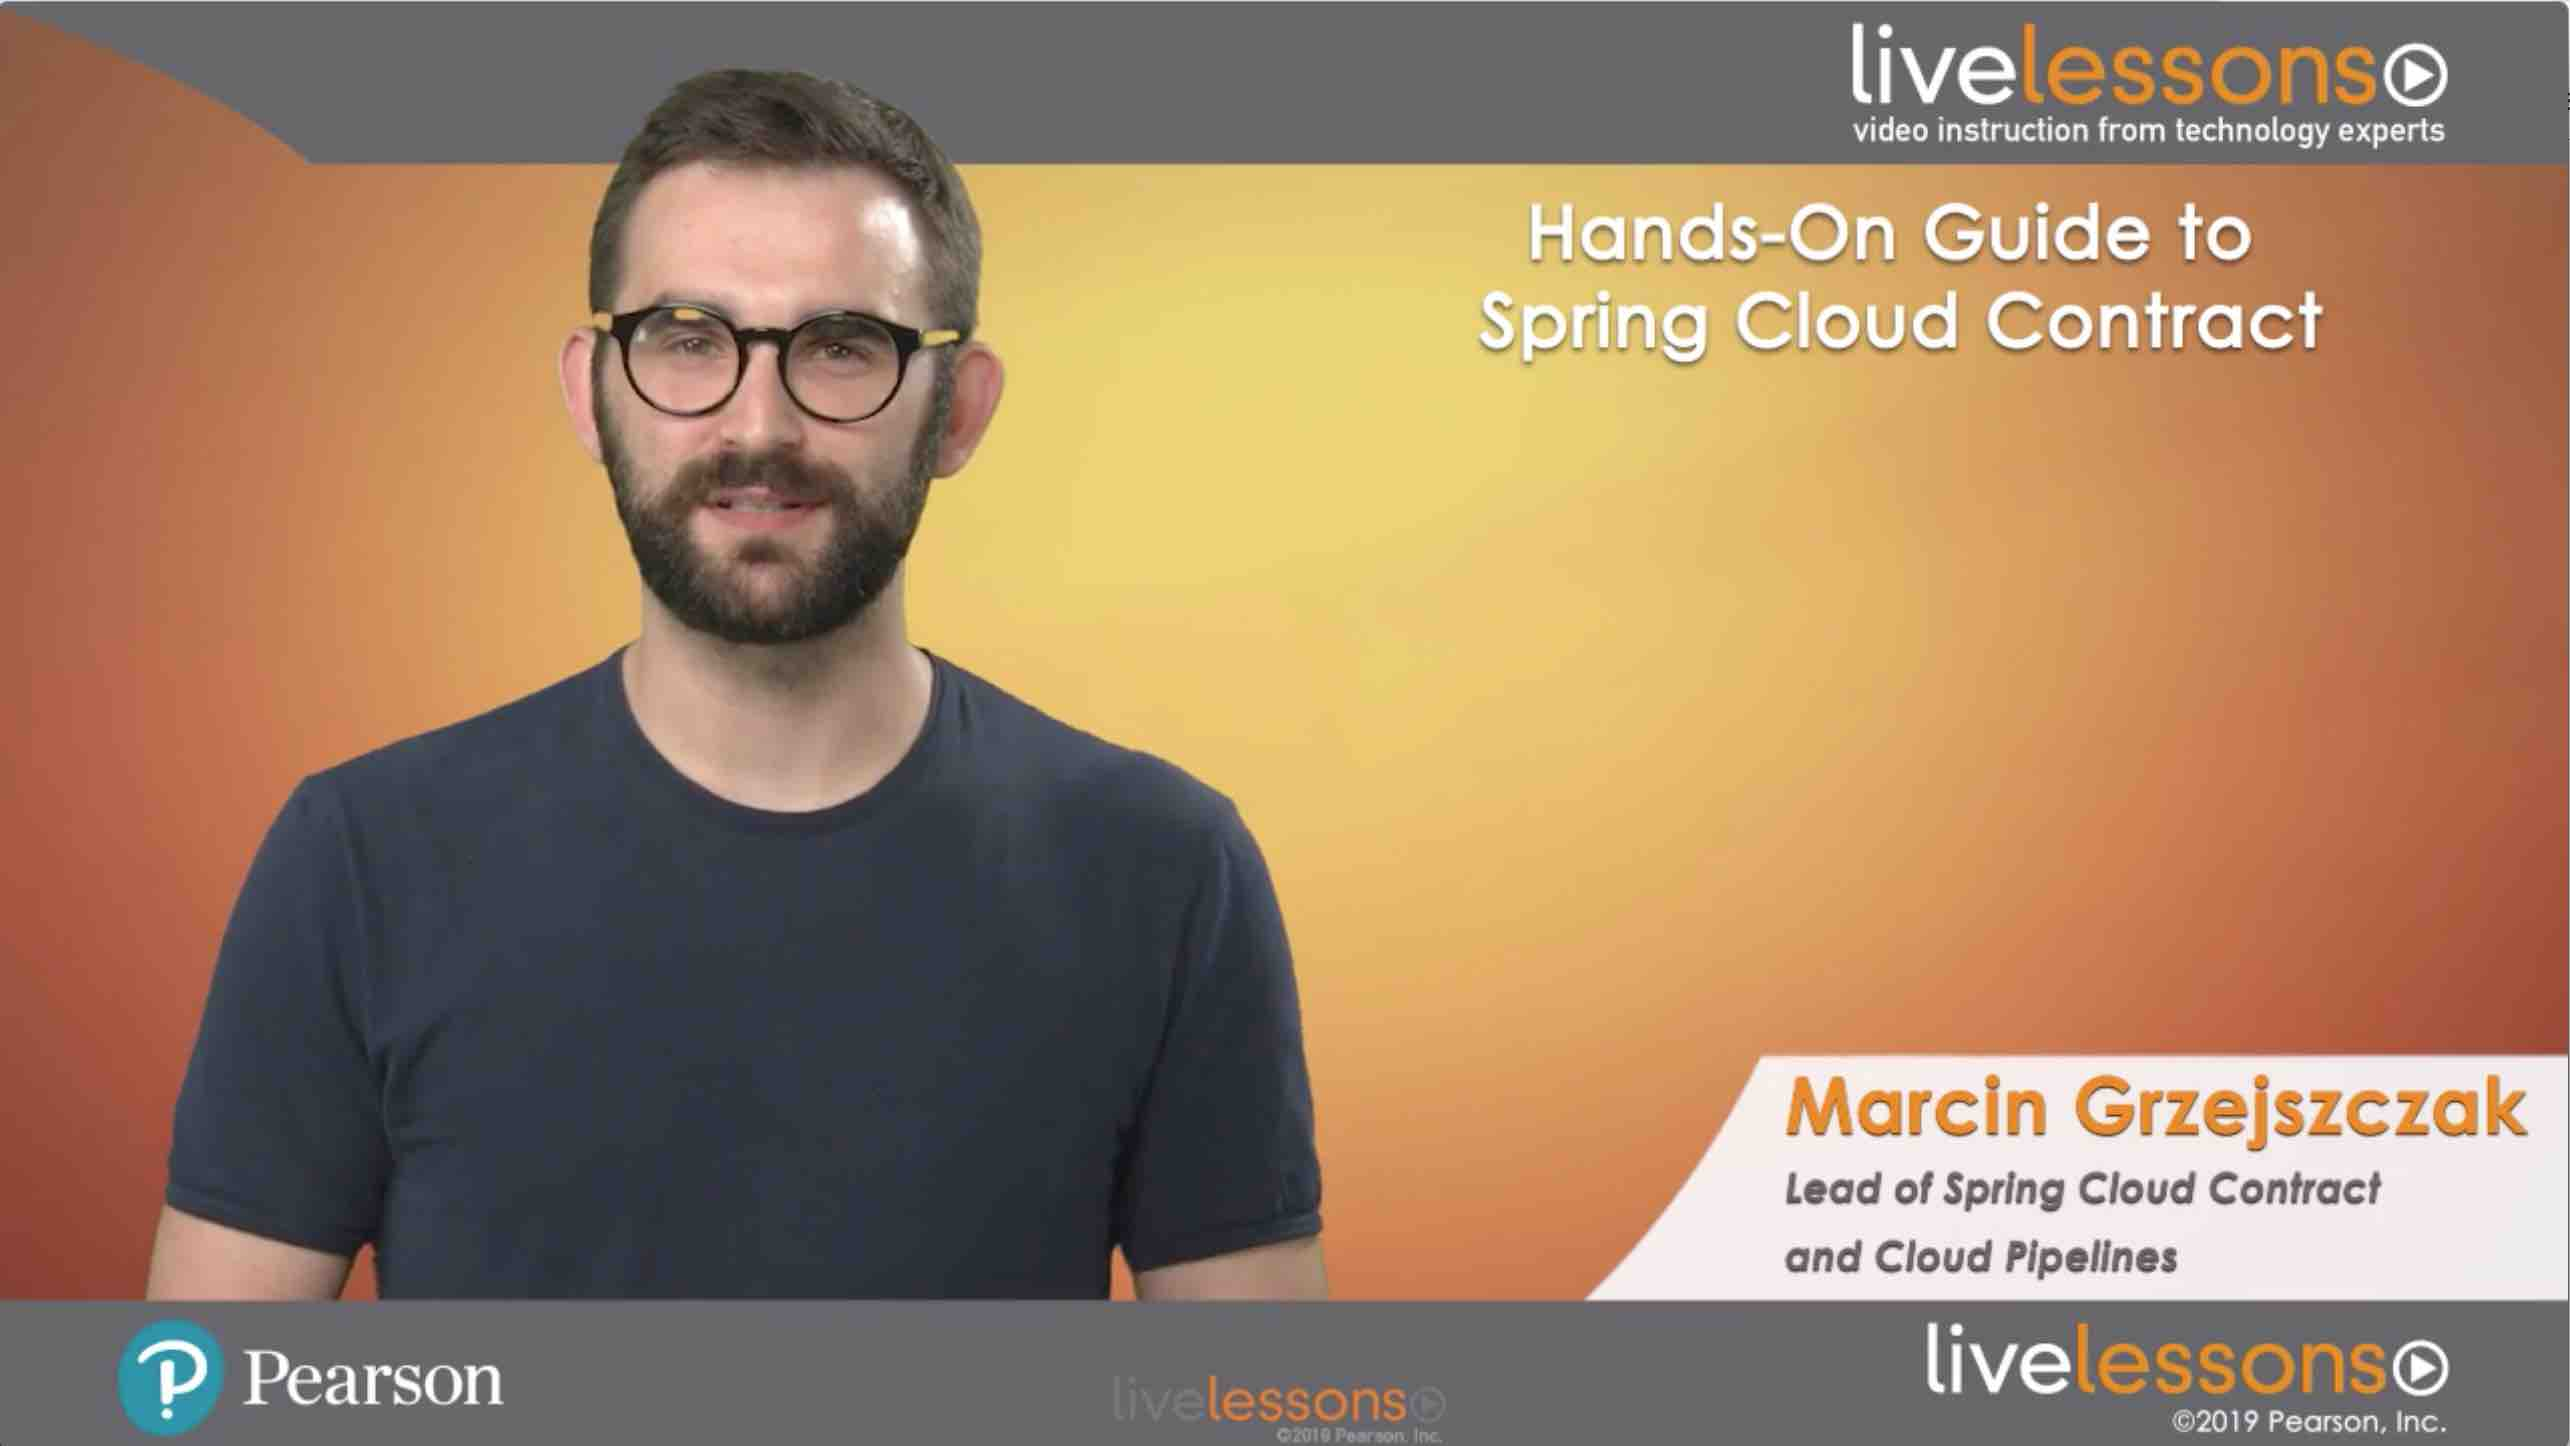 Hands-On Guide to Spring Cloud Contract: Creating Consumer-Driven Contracts to Leverage Contract Tests and Improve Your Code Hands-On Guide to Spring Cloud Contract: Creating Consumer-Driven Contracts to Leverage Contract Tests and Improve Your Code